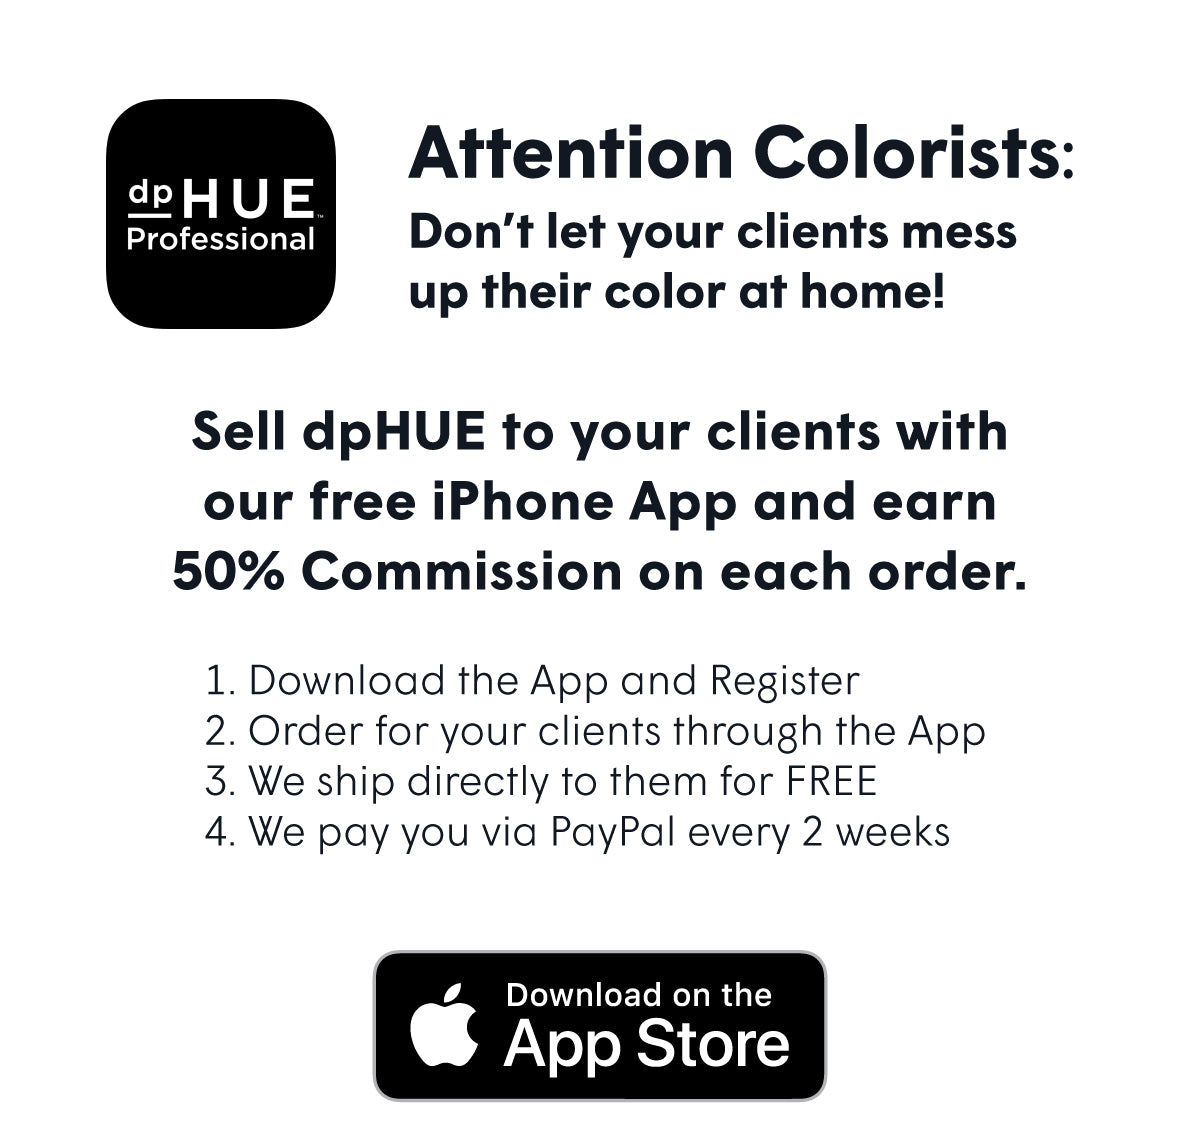 dpHUE Professional - Download on the App Store